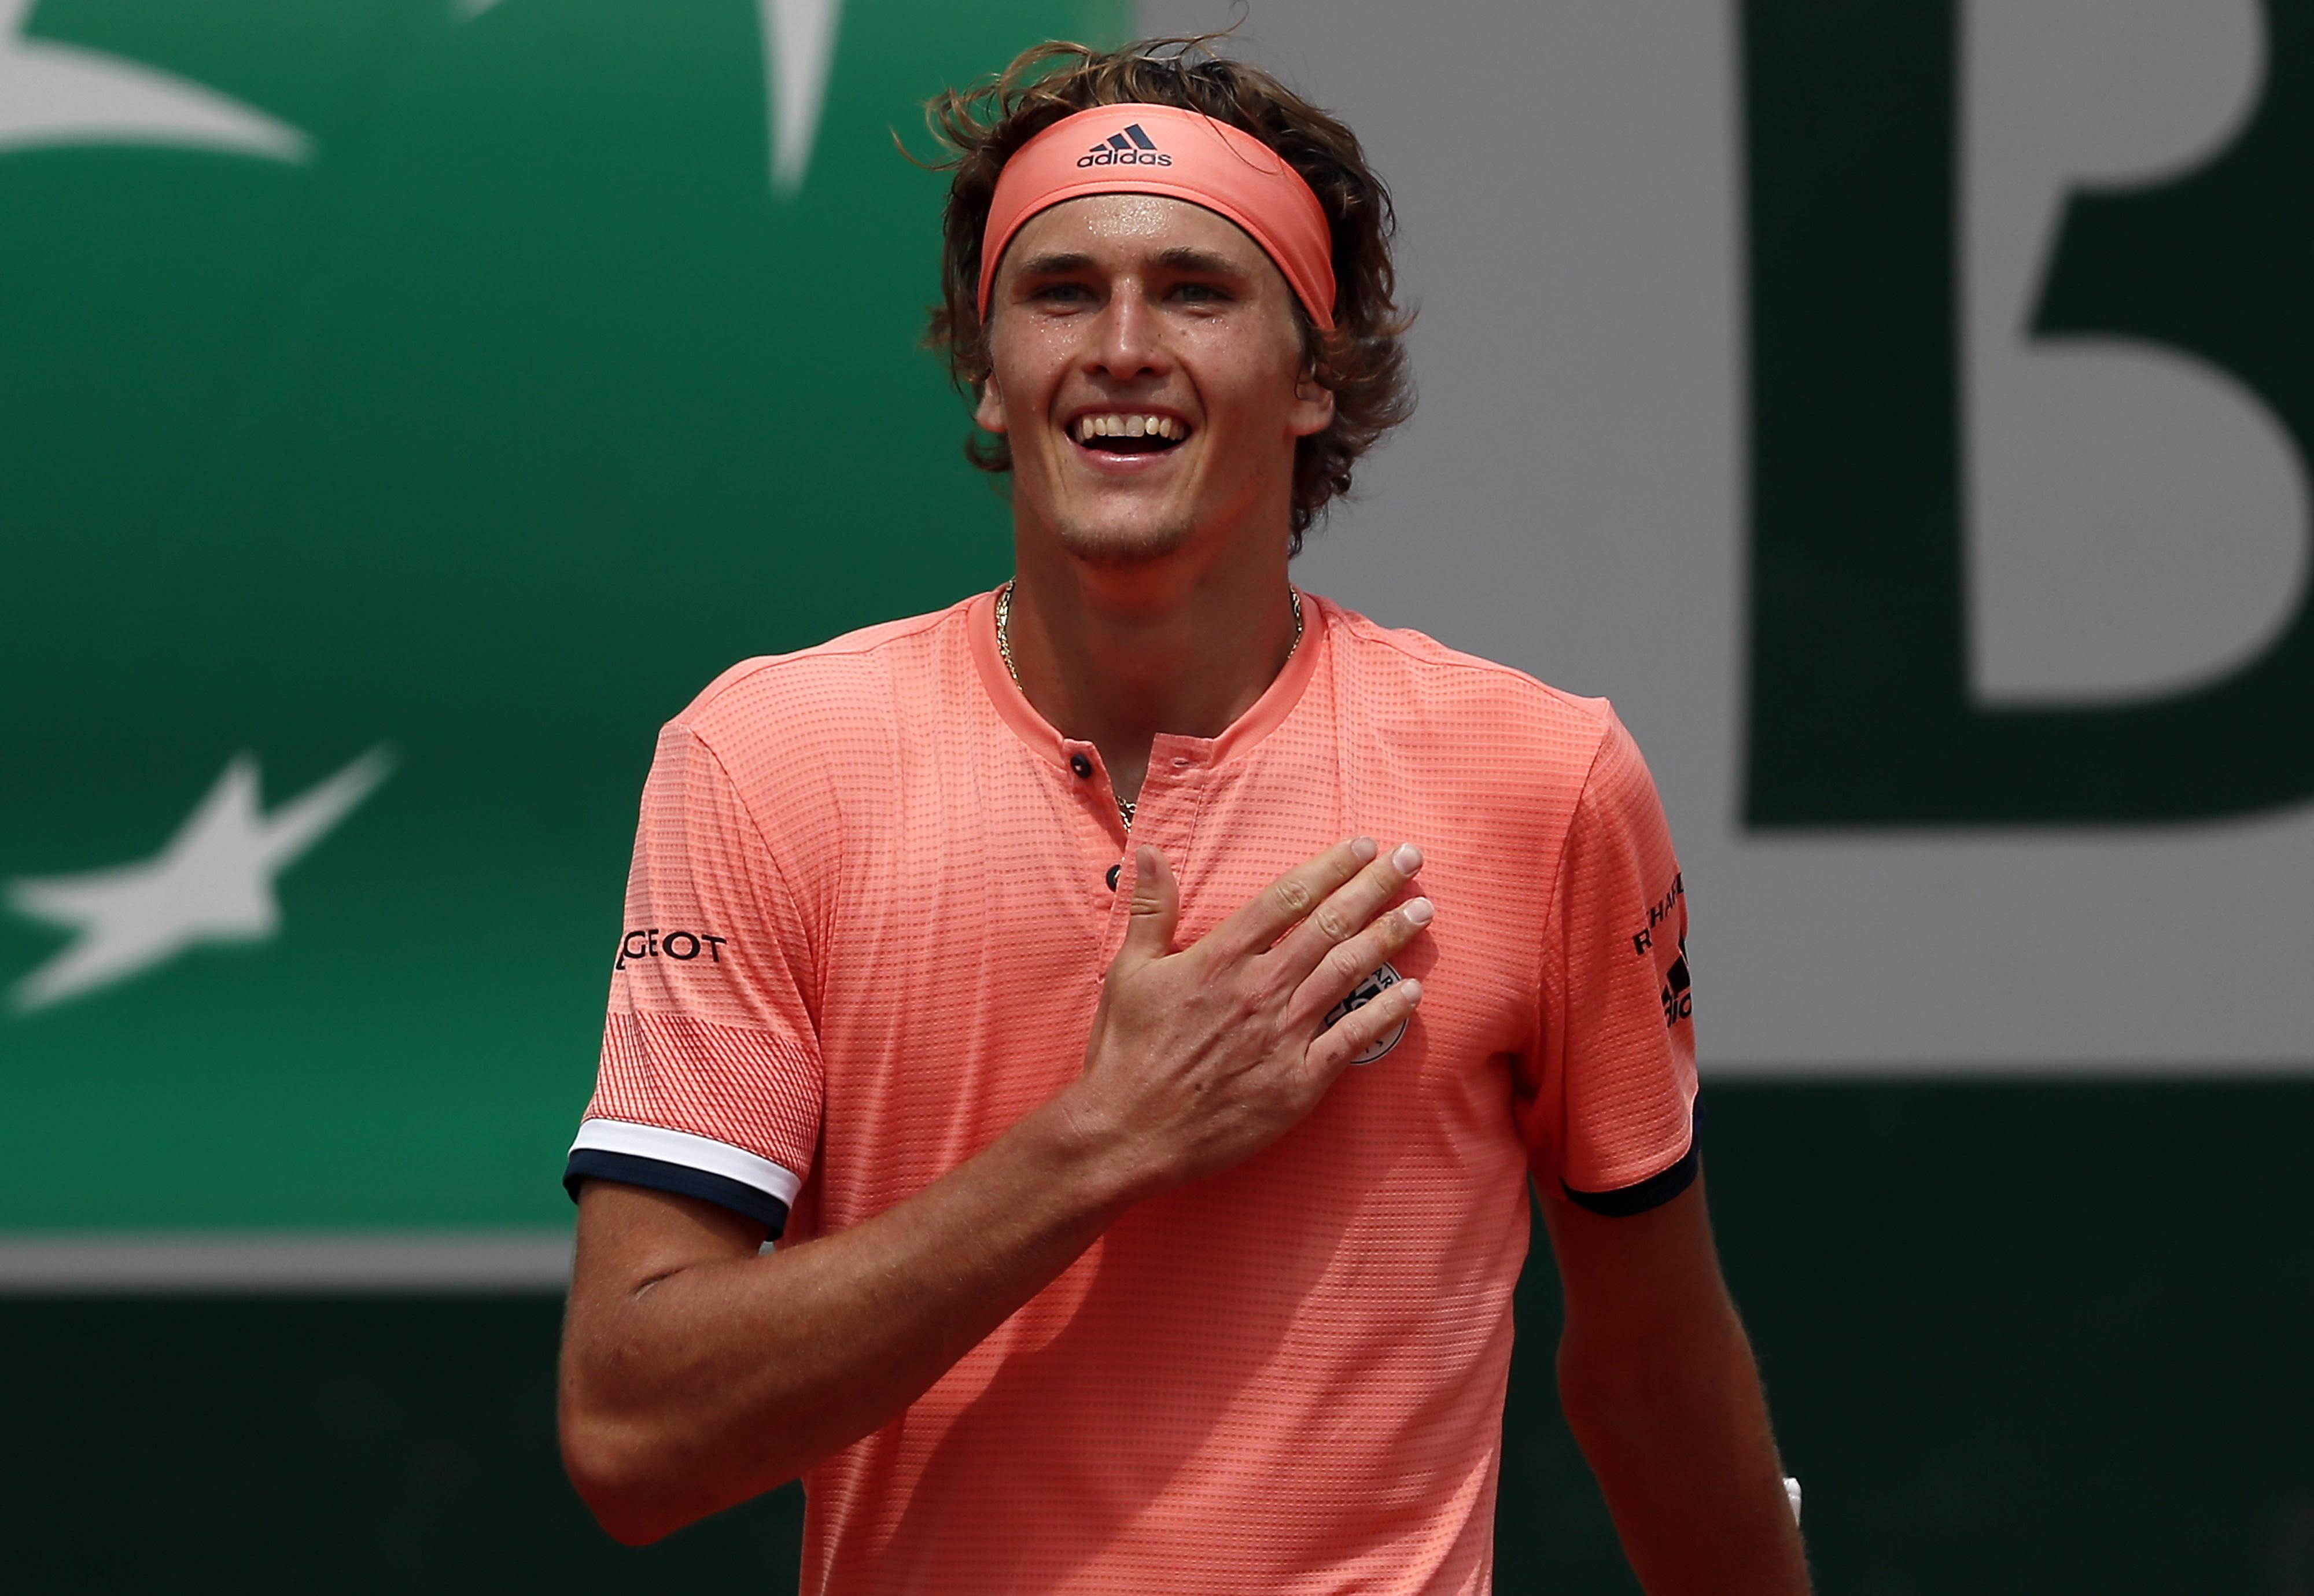 Alexander Zverev reached his first Grand Slam quarter-final on Sunday